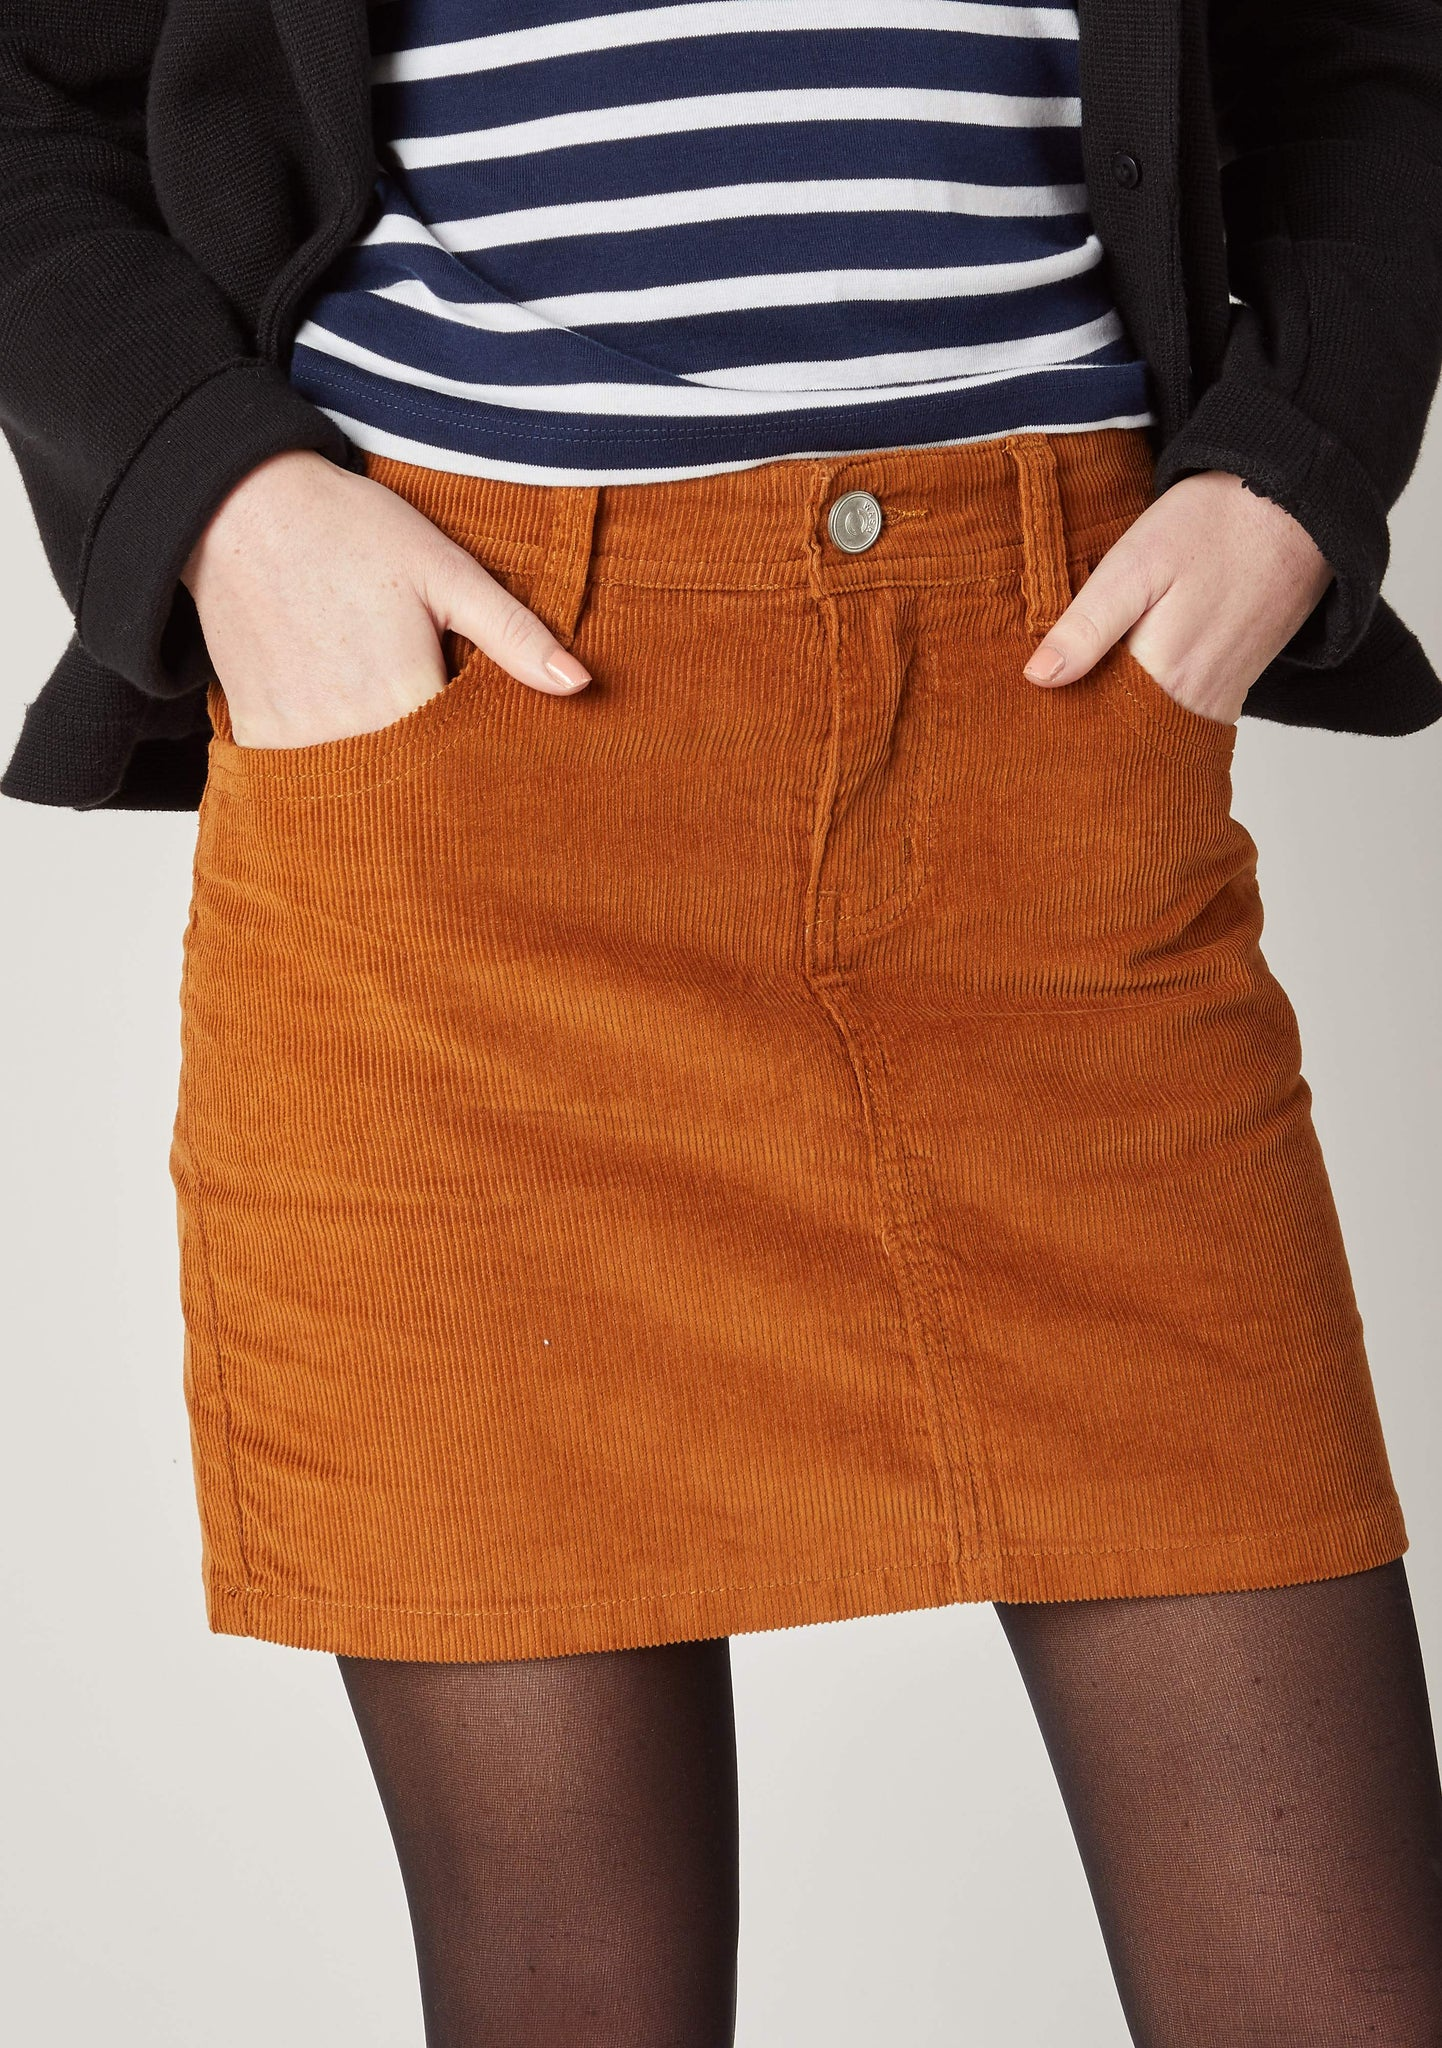 Close front view of brown corduroy skirt, with hands in front pockets with focus on belt loops, front zip and button fastening.